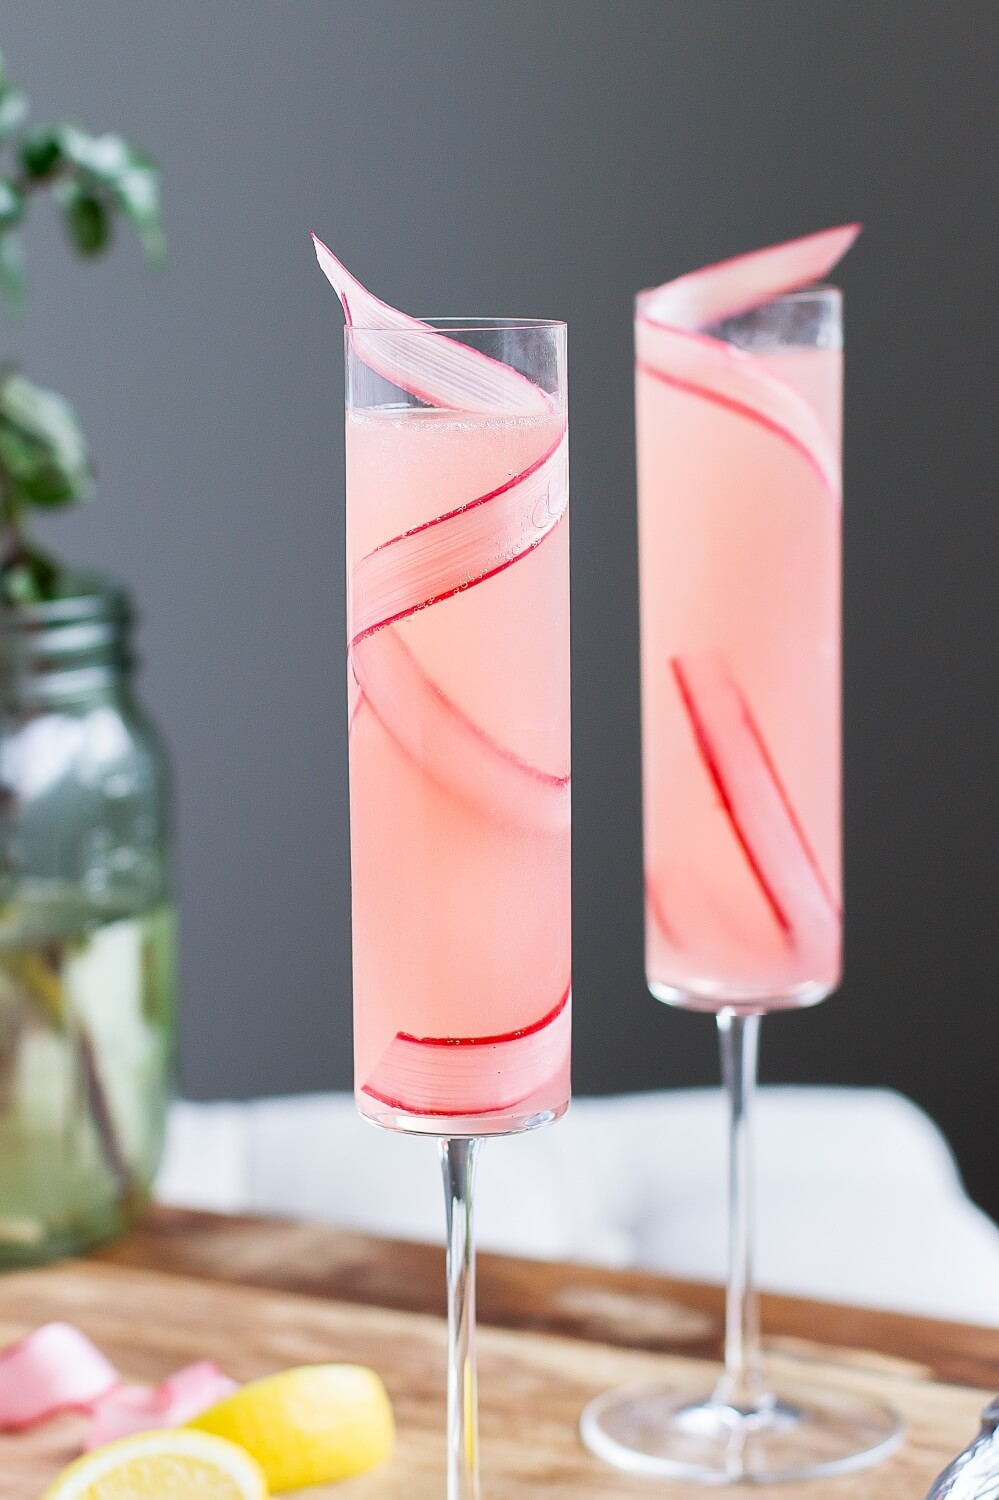 rhubarb 75 cocktail recipe by the good drink_web